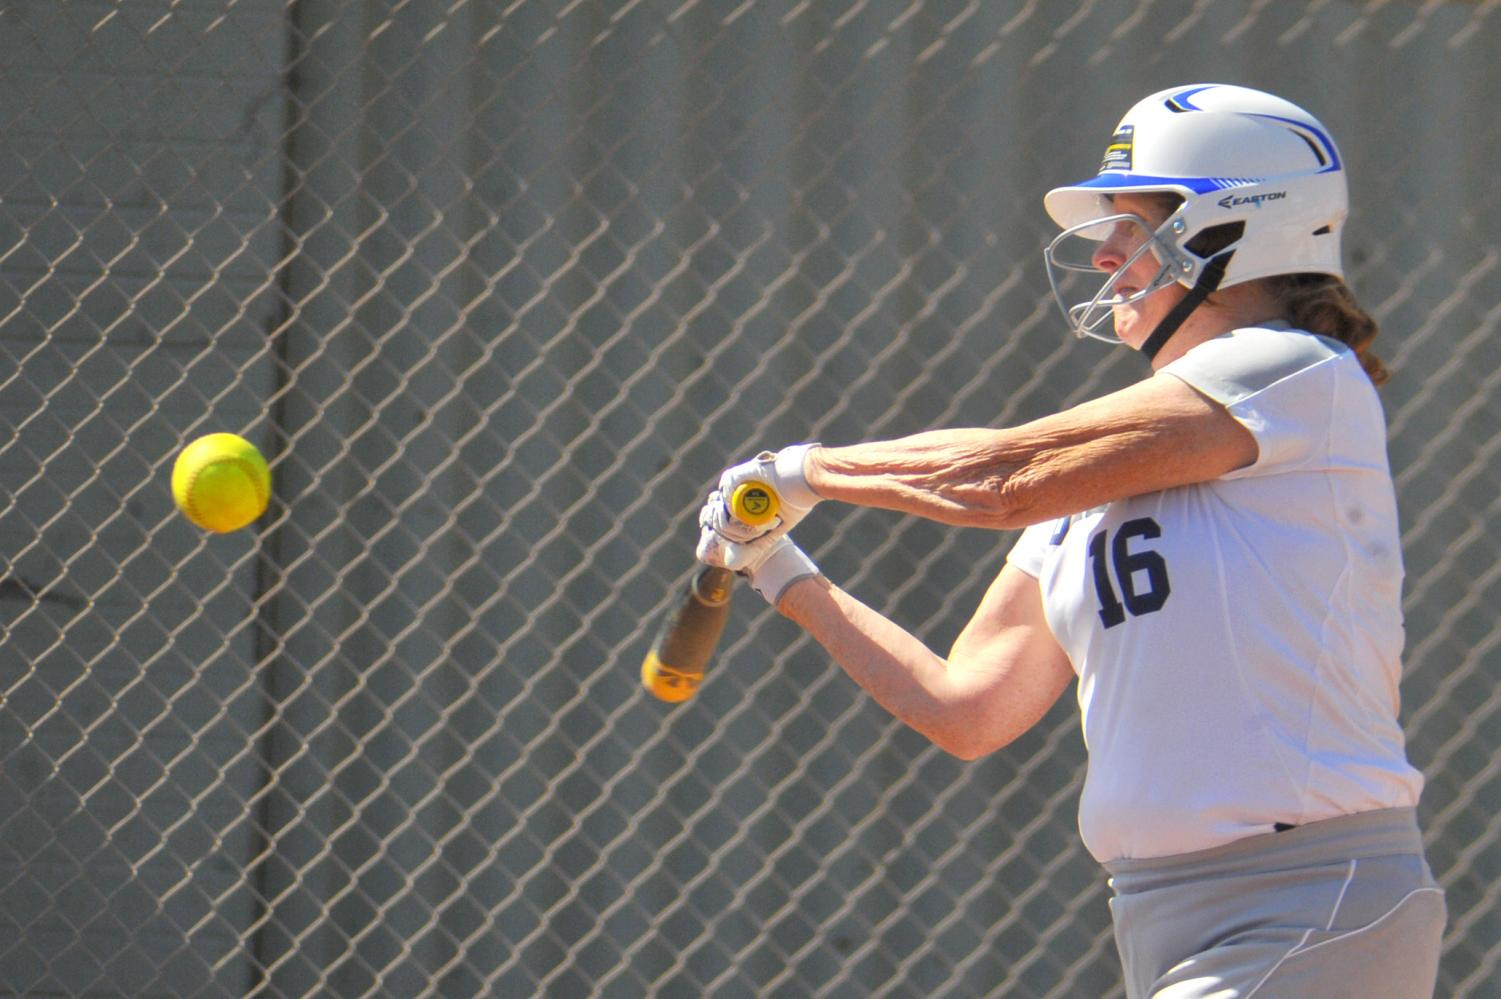 Comet first baseman Shelly Walker fouls a pitch back during the bottom of the 2nd inning of a 15-2 loss against Yuba College Thursday on the Softball Field.